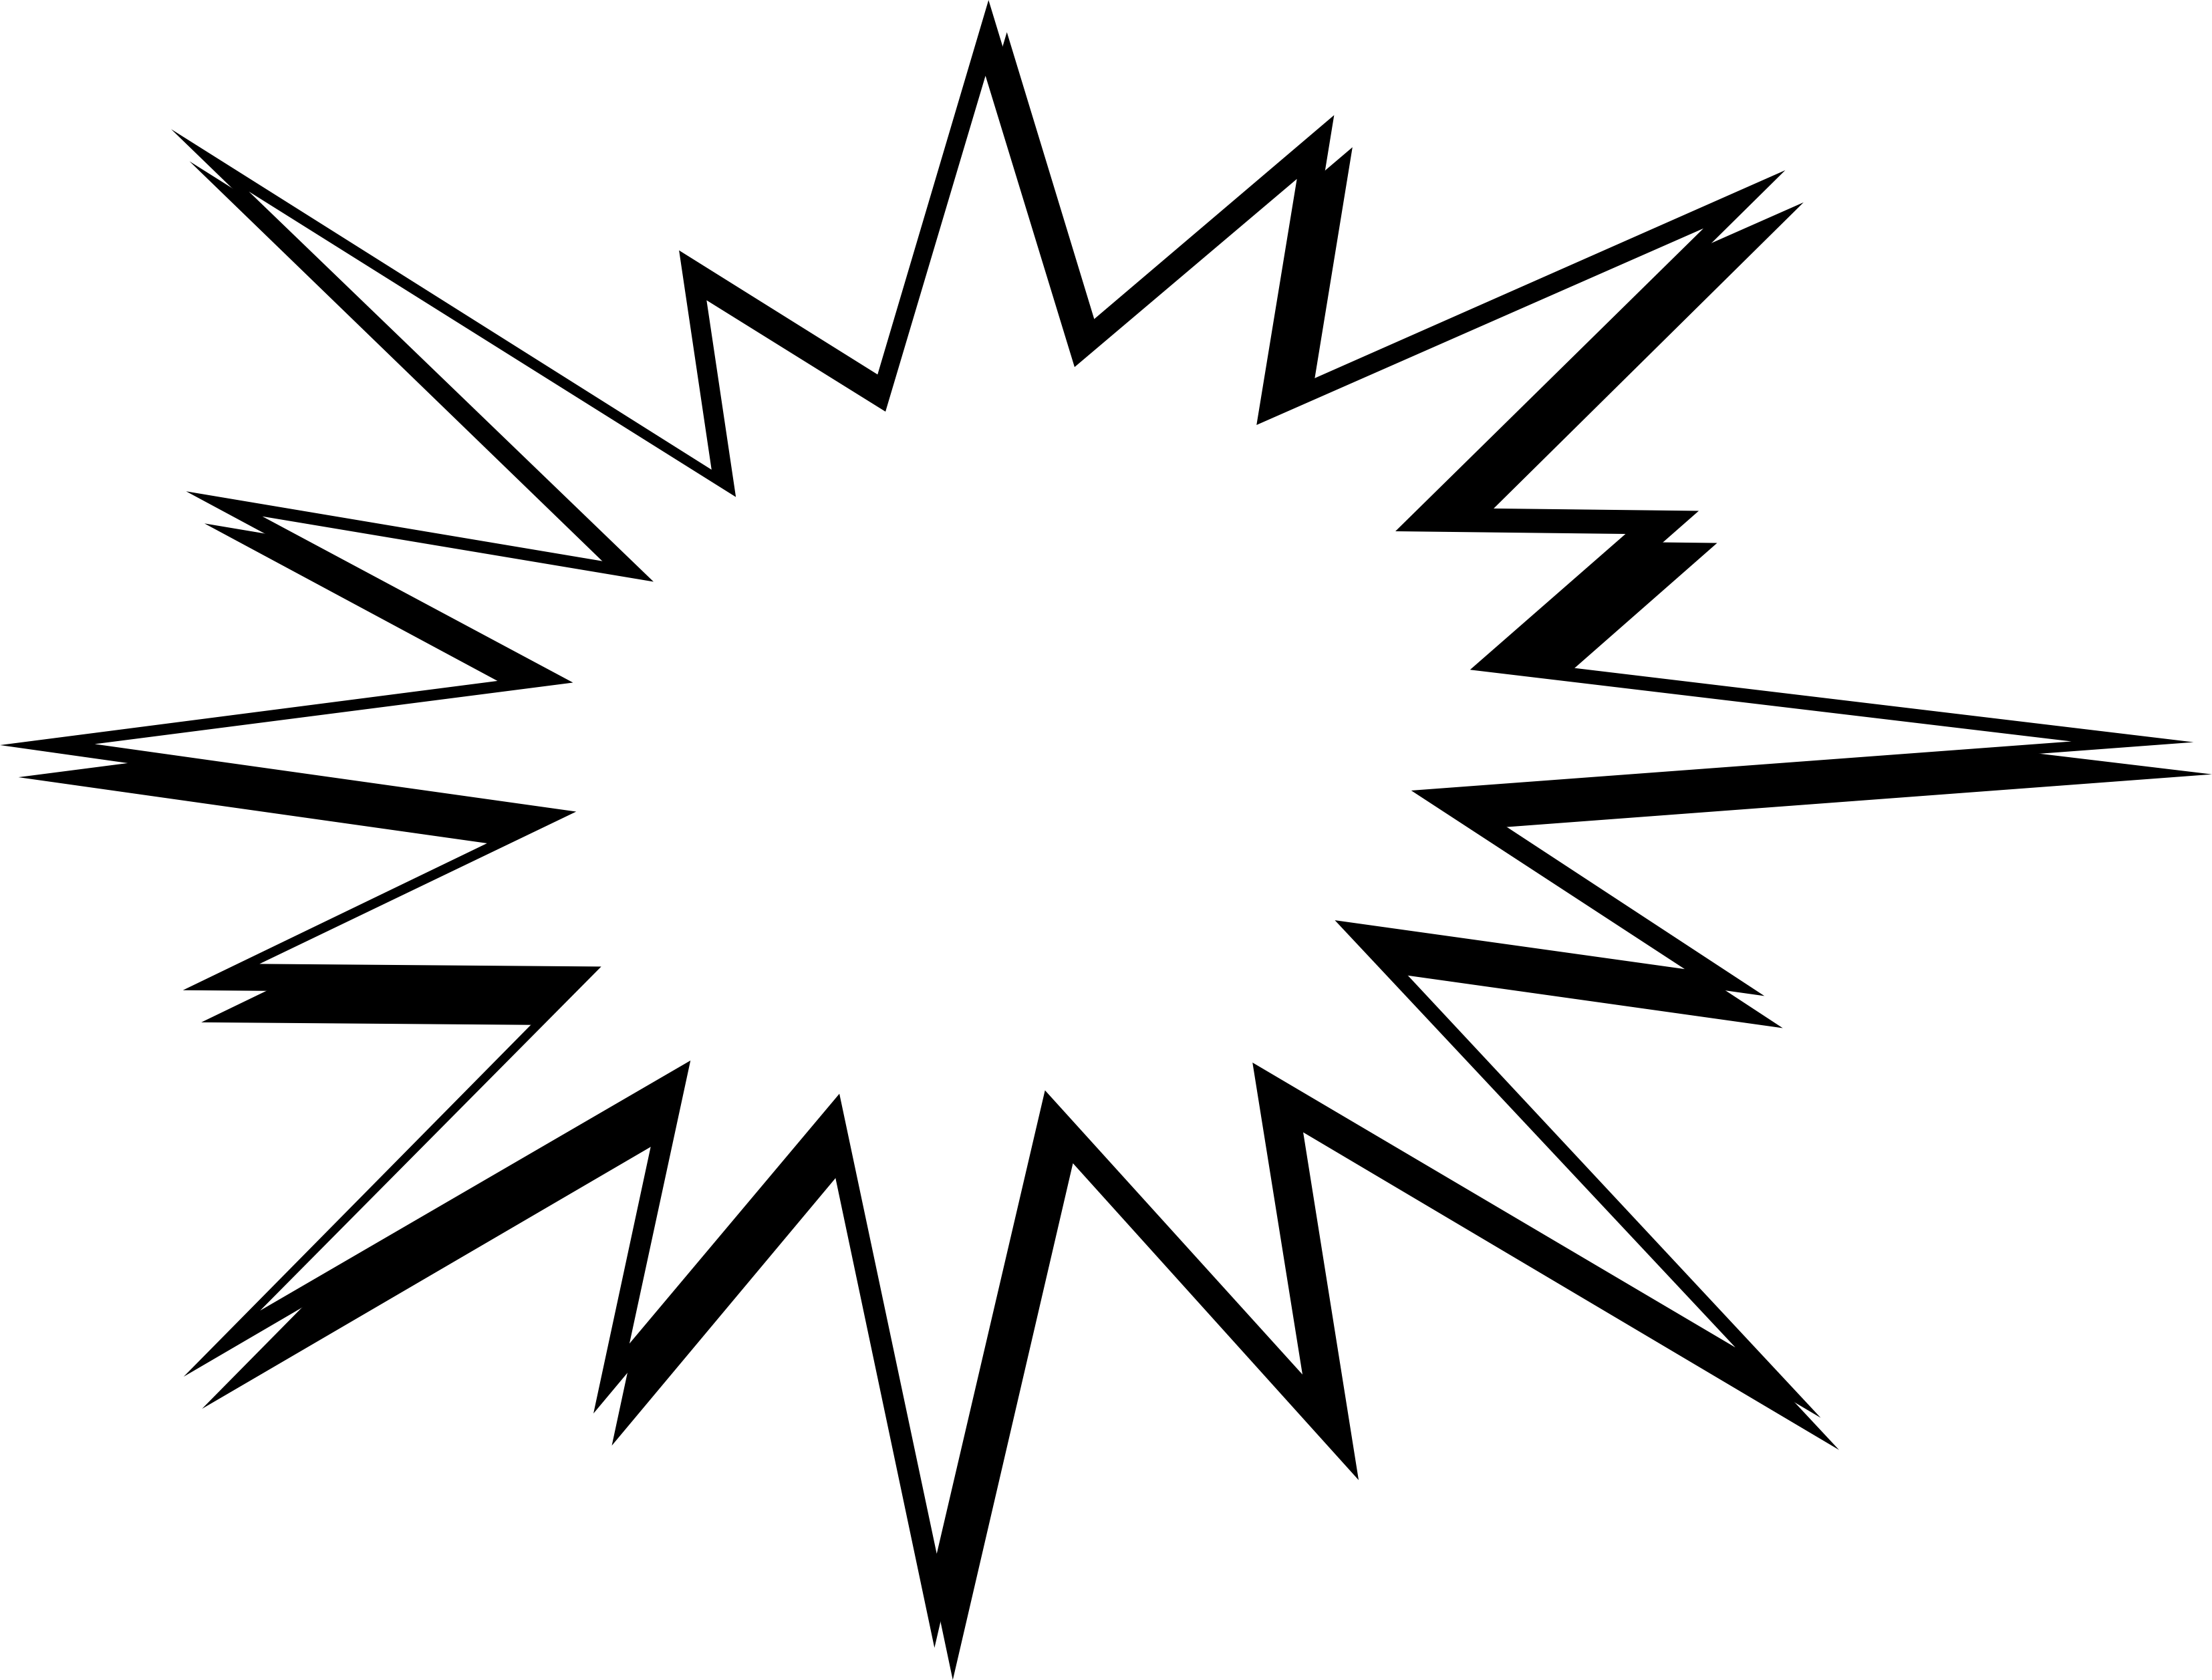 20 Comic Boom Explosion Vector Transparent Svg Vol